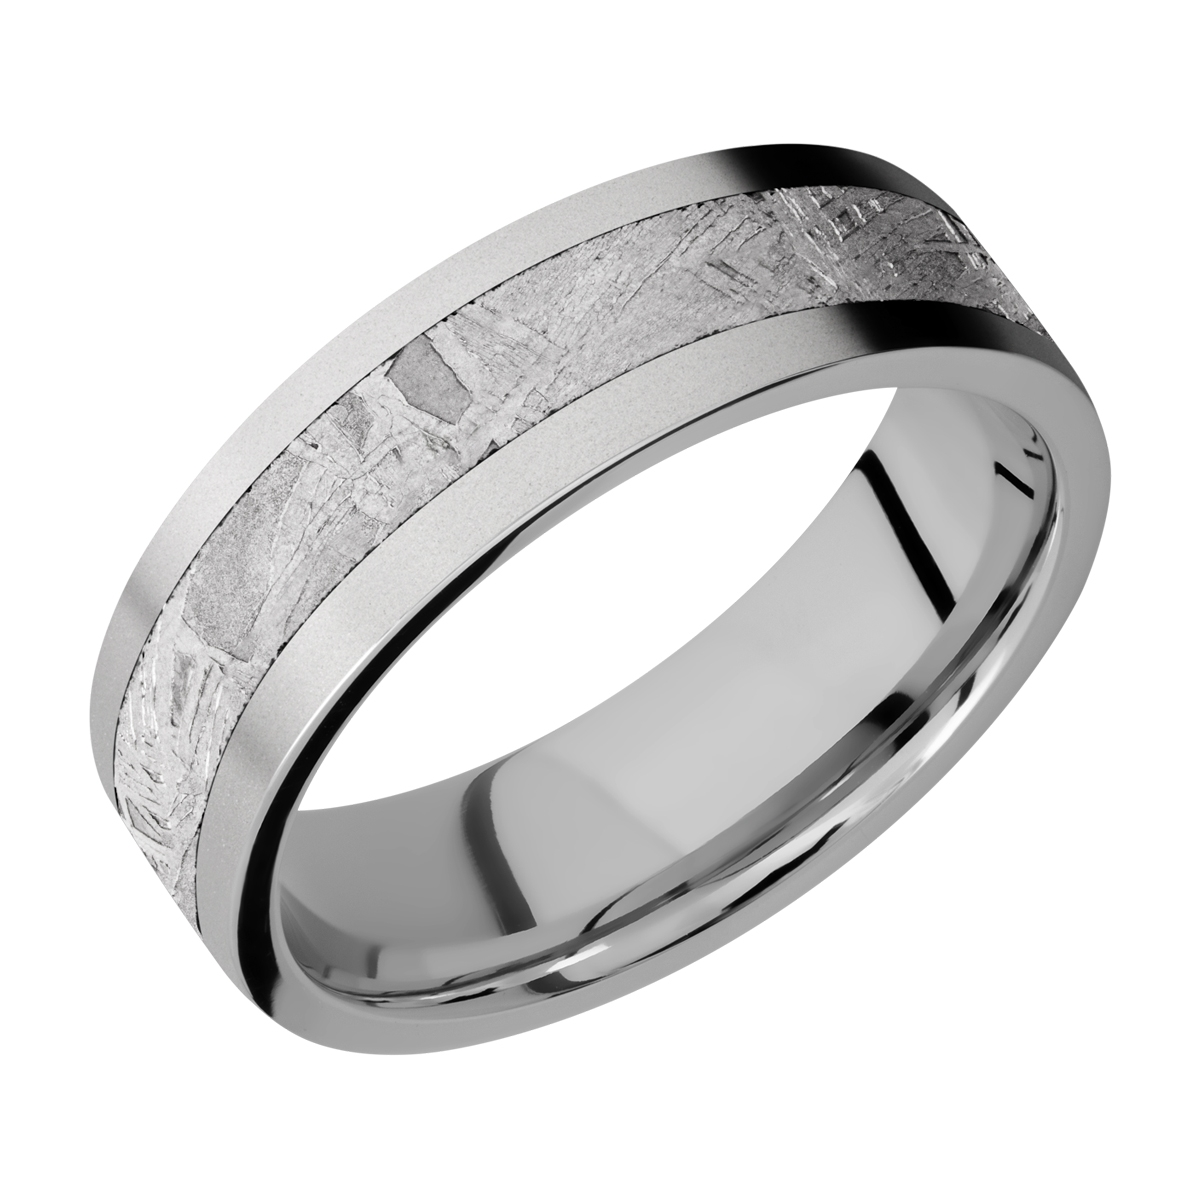 Lashbrook 7F14/METEORITE Titanium Wedding Ring or Band